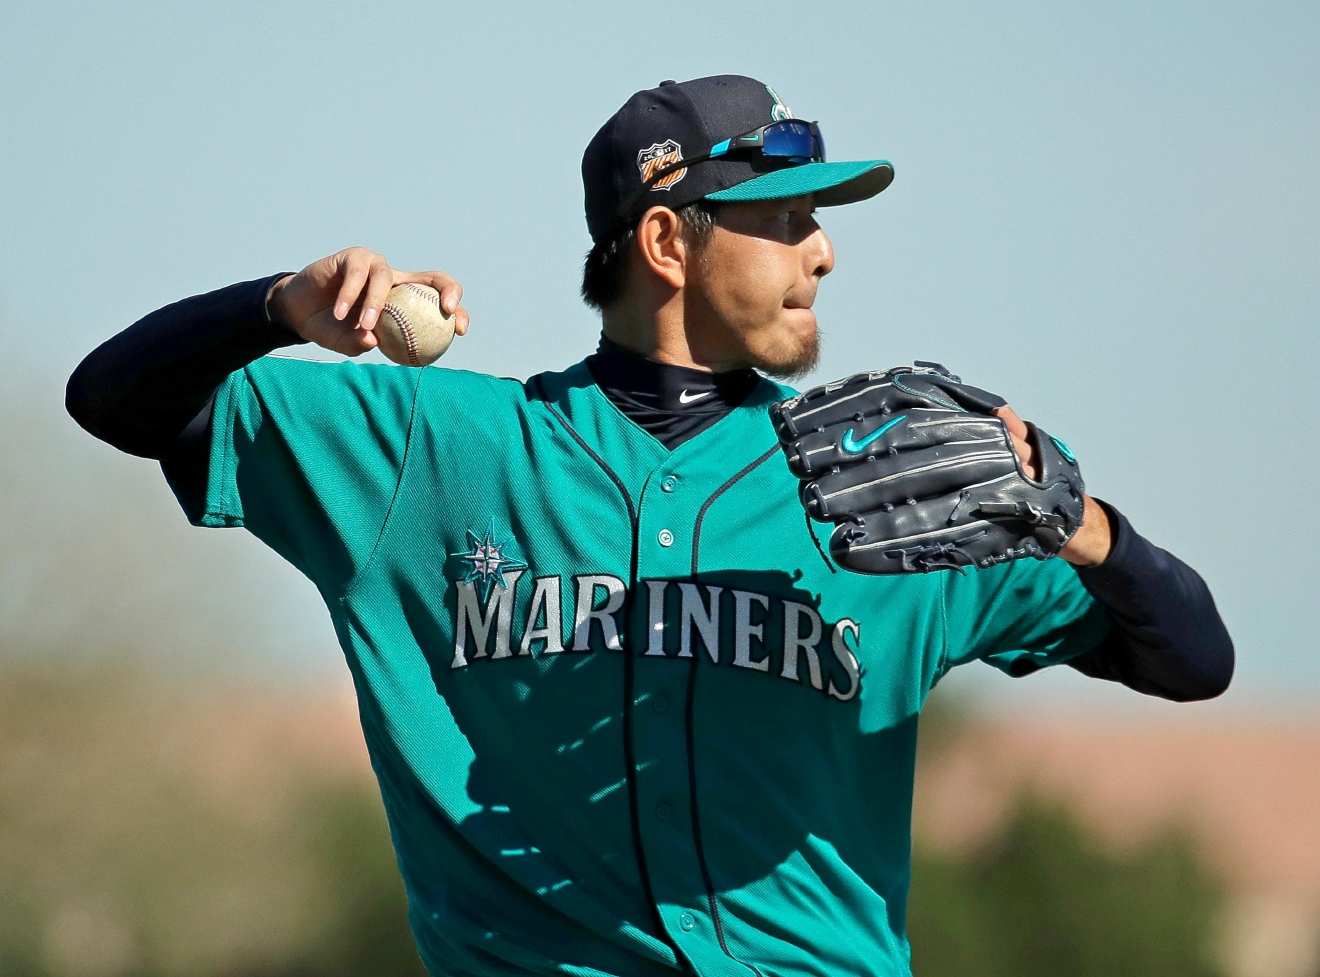 Seattle Mariners pitcher Hisashi Iwakuma throws during spring training baseball practice, Tuesday, Feb. 21, 2017, in Peoria, Ariz. (AP Photo/Charlie Riedel)